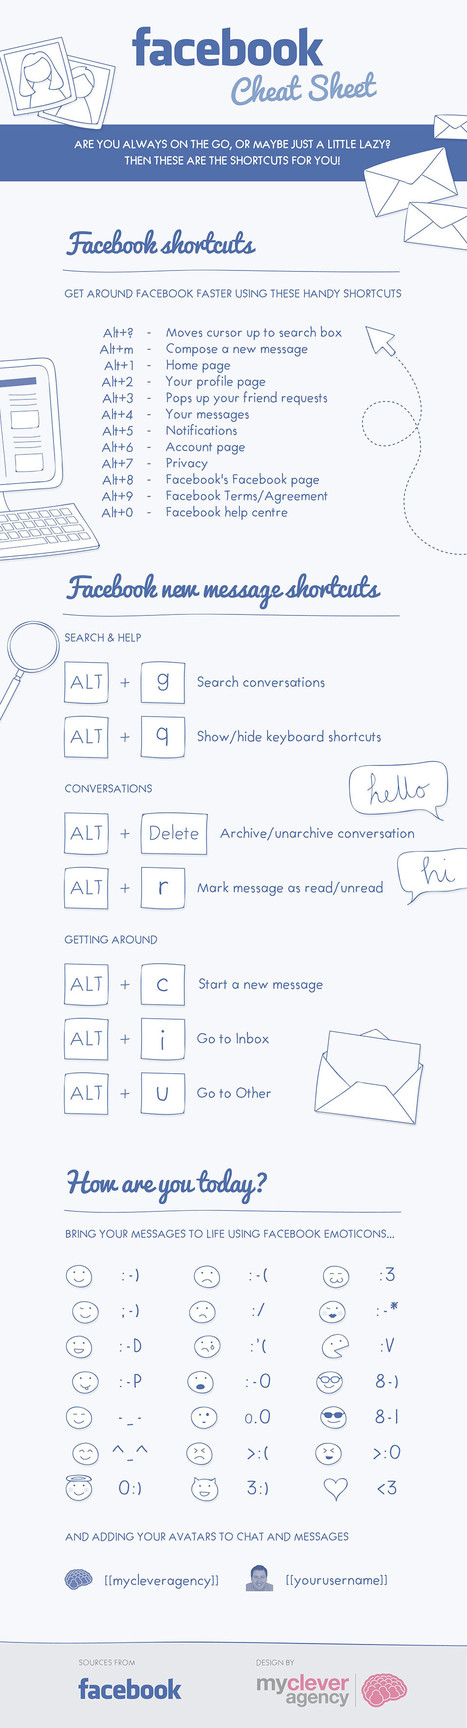 Facebook Cheat Sheet [INFOGRAPHIC] | TEFL & Ed Tech | Scoop.it